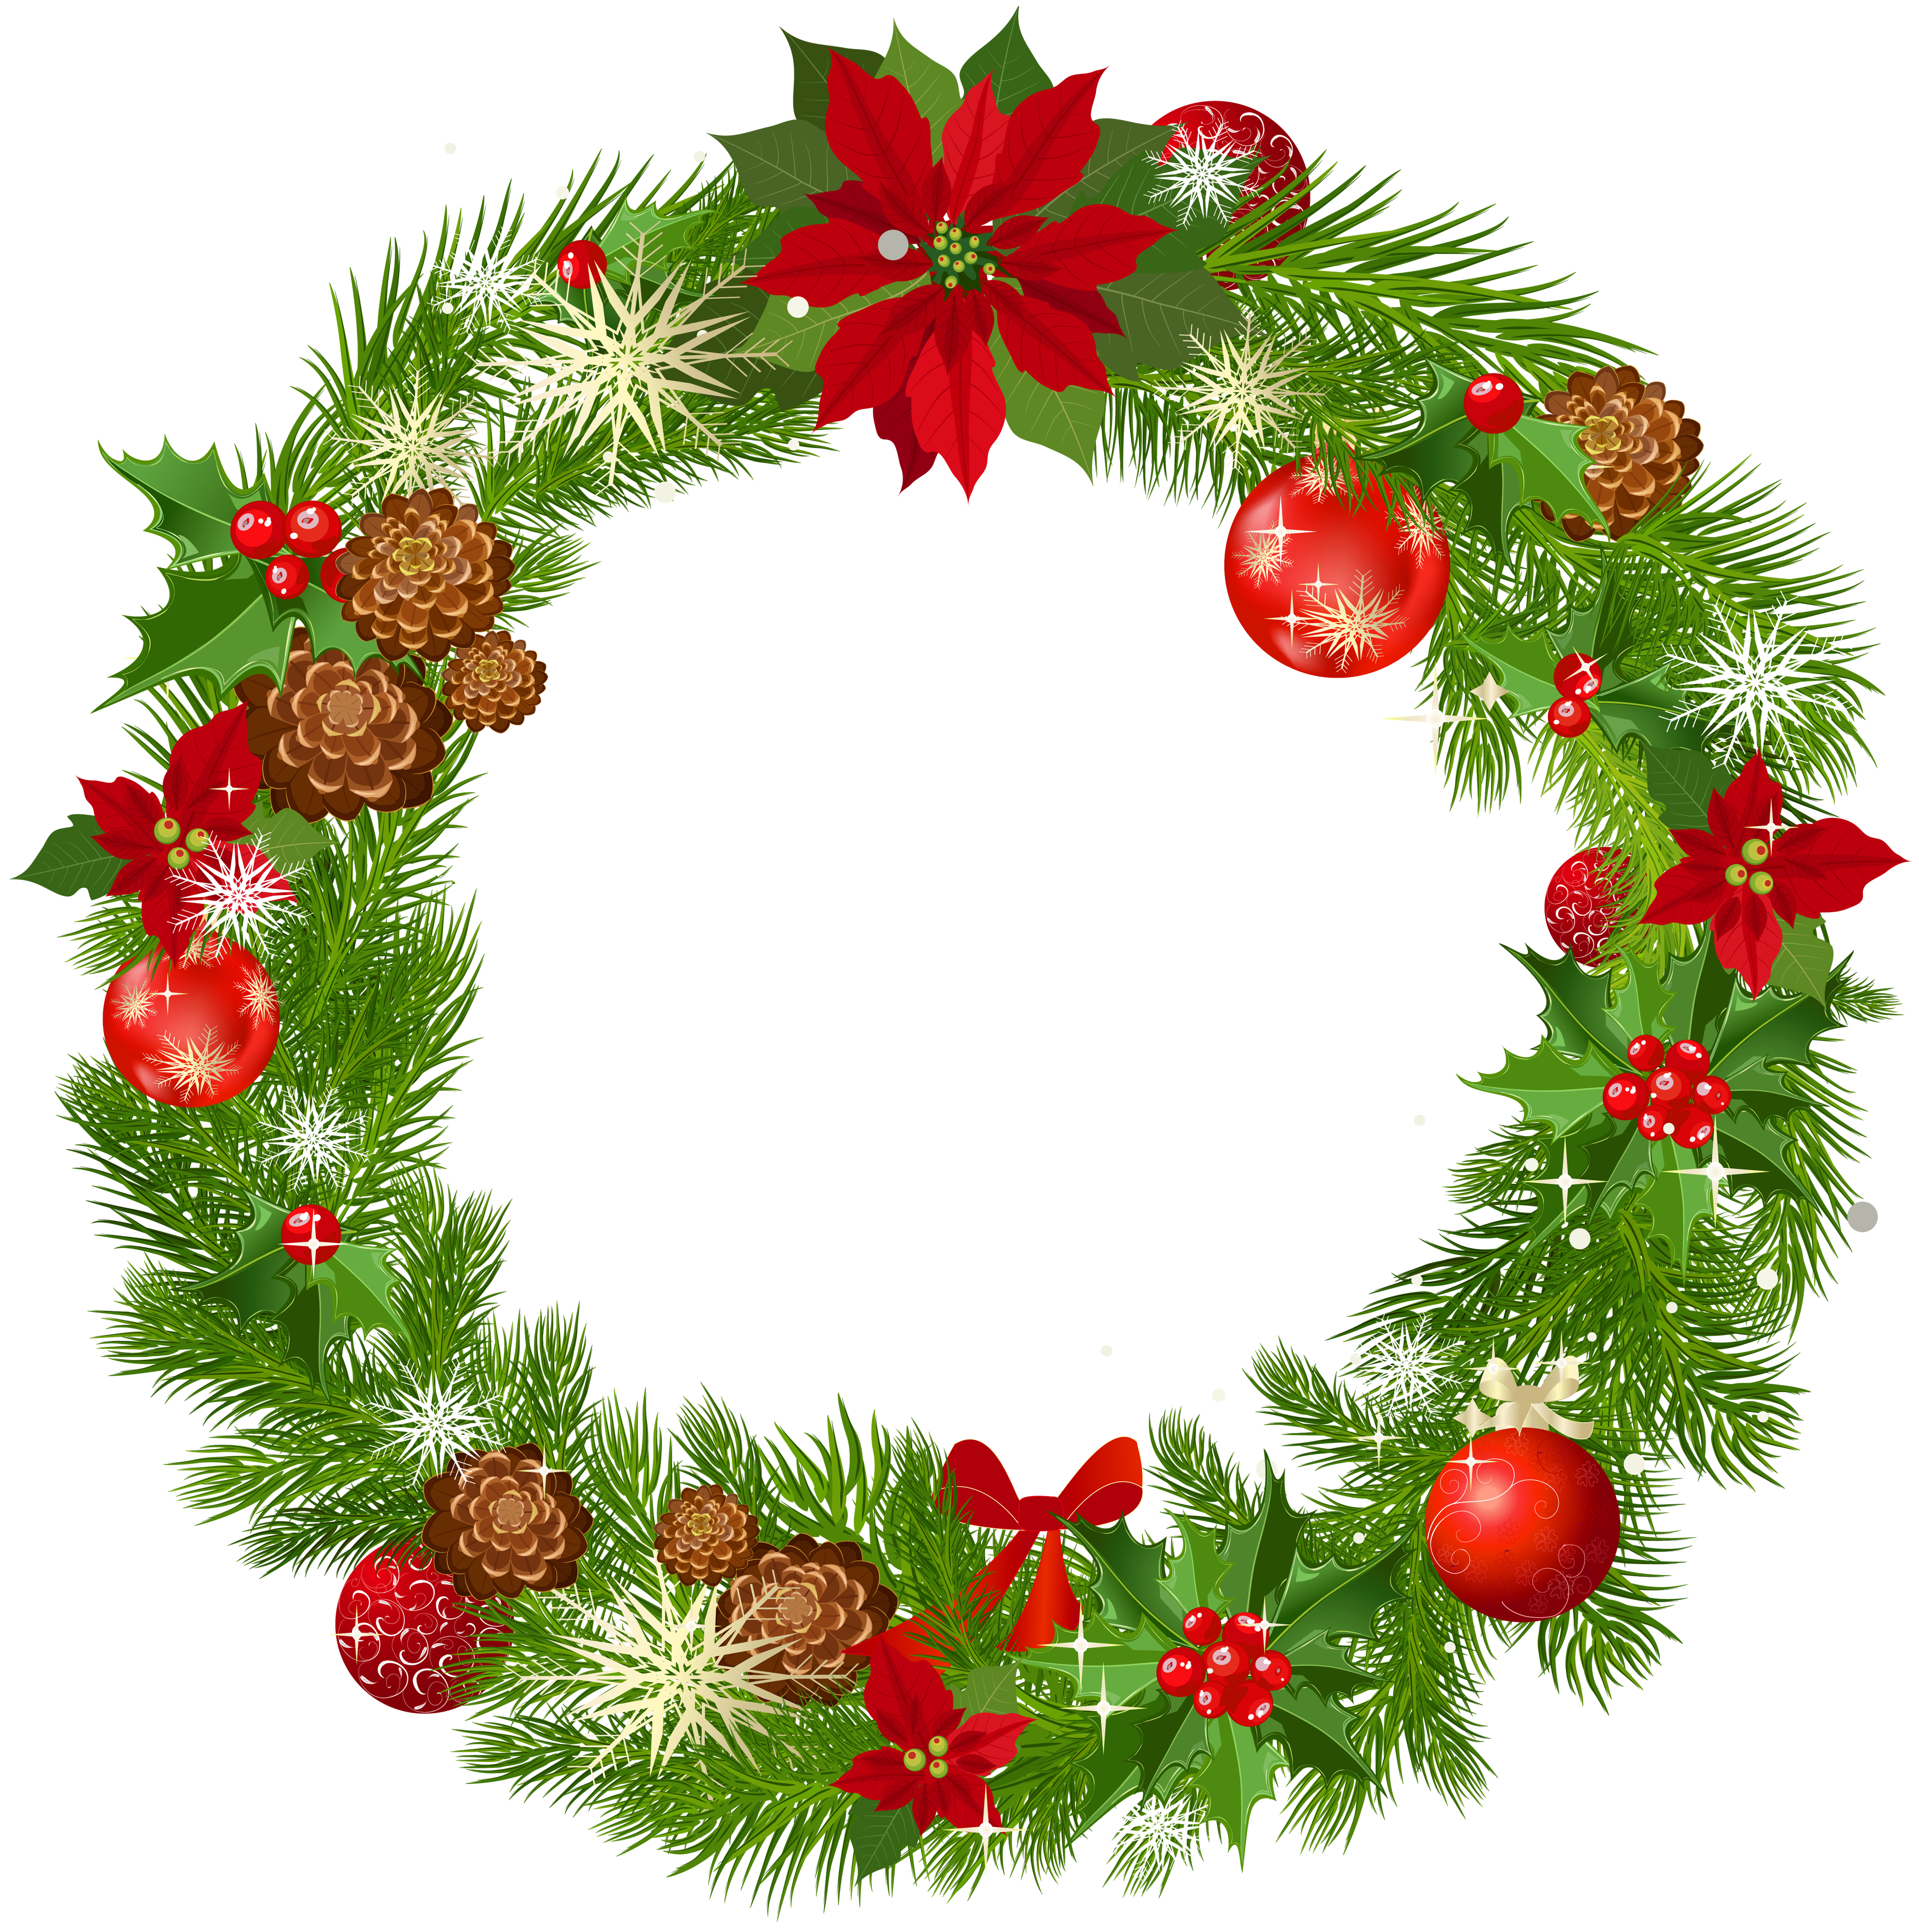 Christmas wreath border png. Collection of clipart